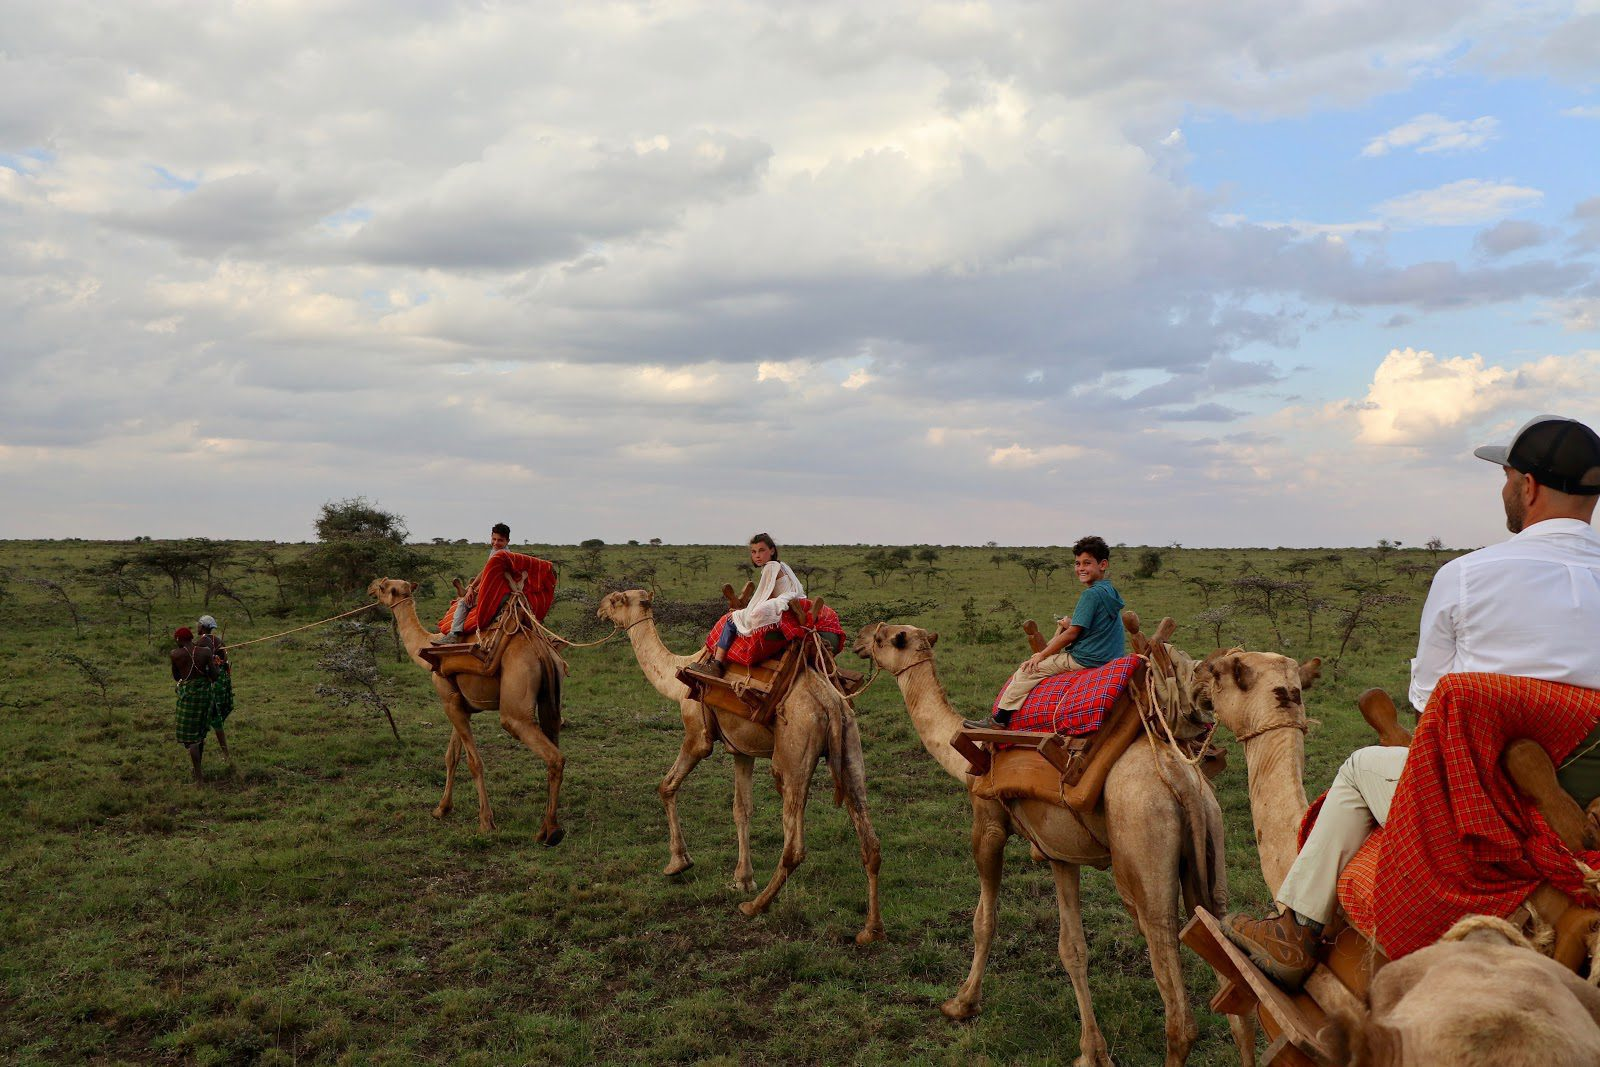 Mollie's family rides atop camels on safari, following the lead of their guide